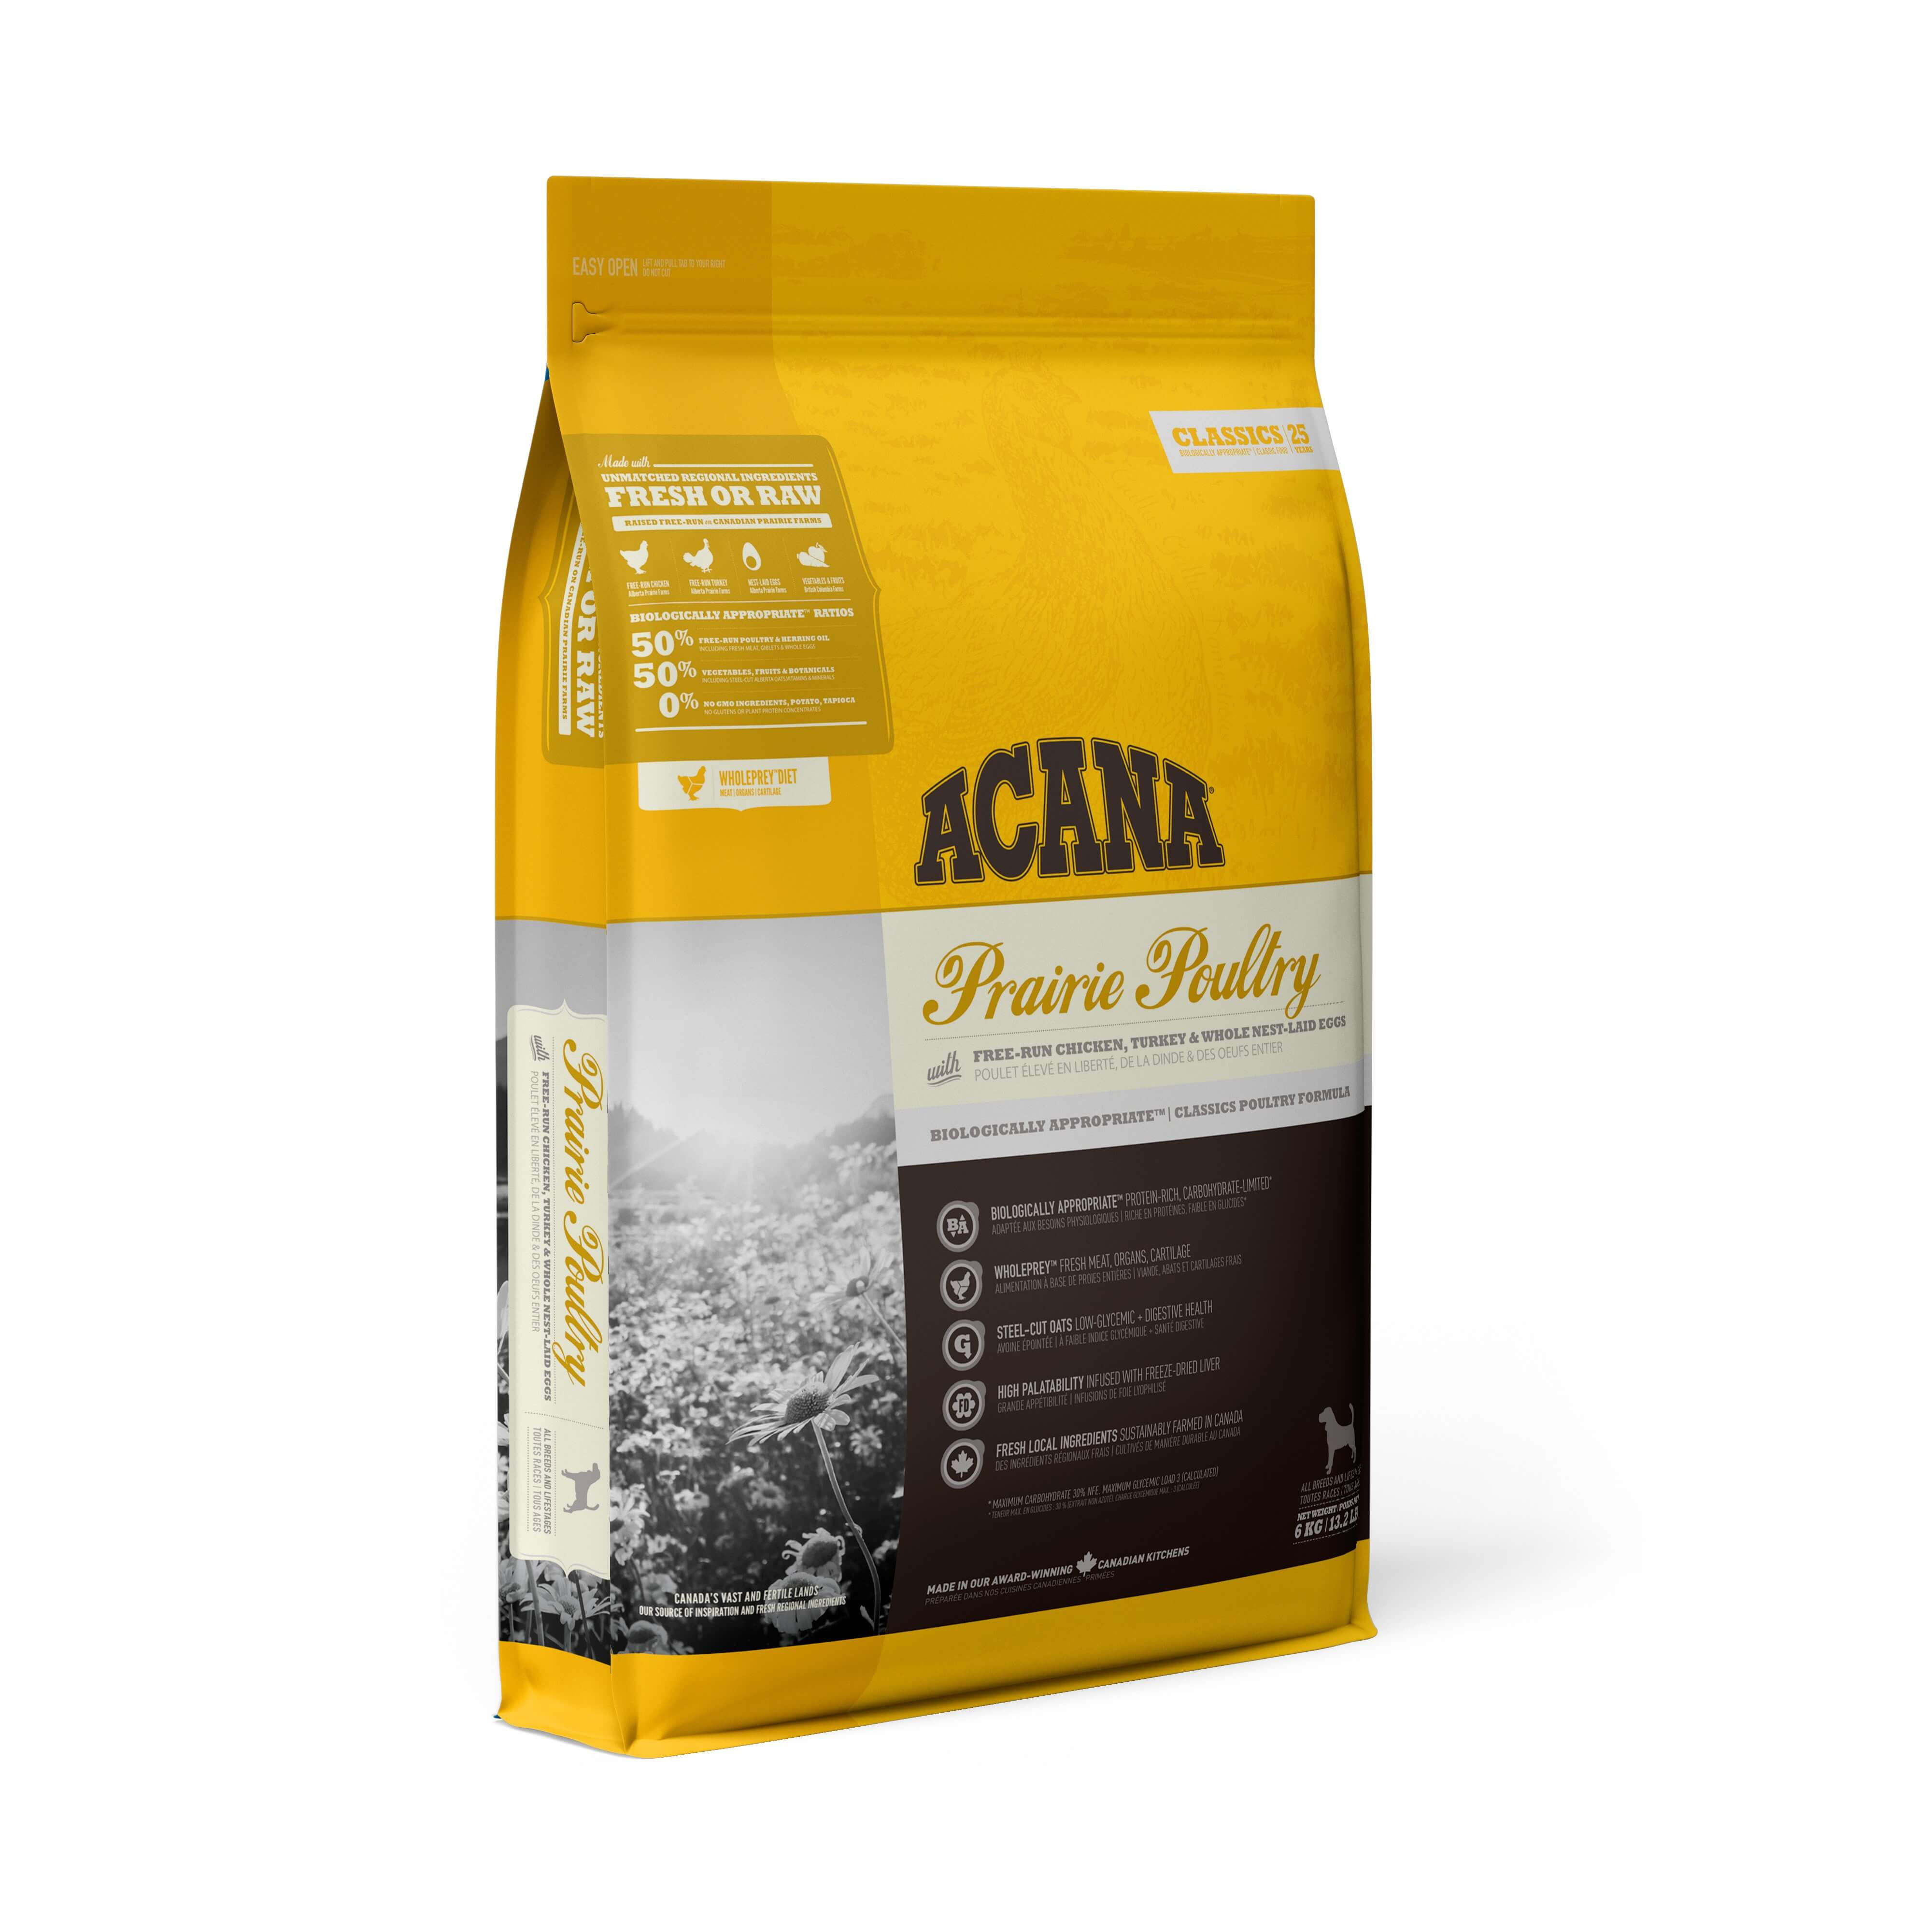 Acana Prairie Poultry | 17kg - Click to enlarge picture.